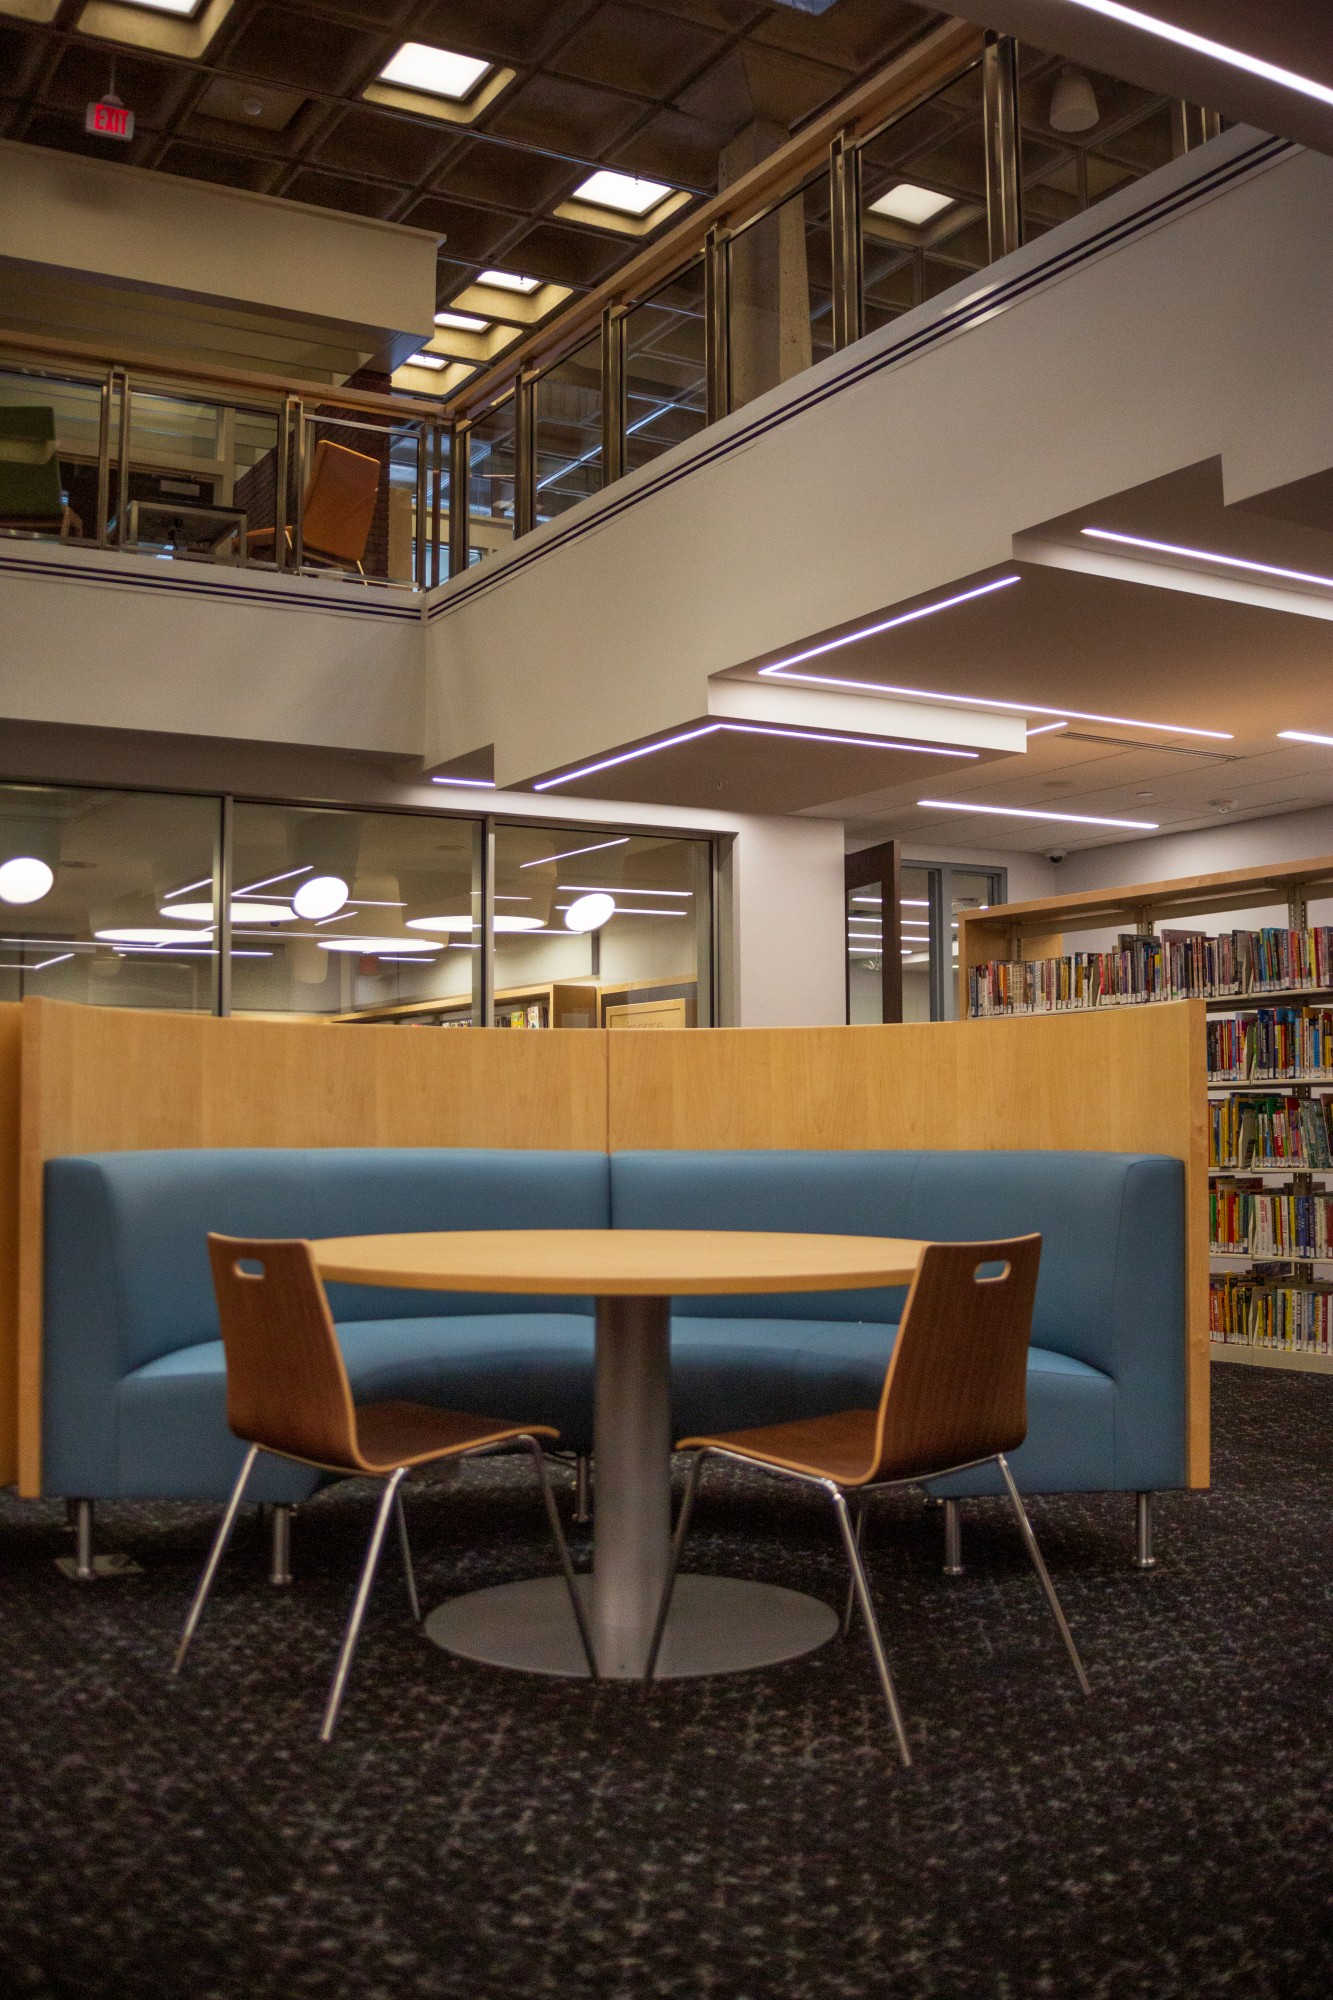 New installments in the Arvonne Fraser Library pay tribute to the building's original architect, Ralph Rapson and library patron Arvonne Fraser on Friday, Jan. 17.  The newly renovated building is set to open on Jan. 25. (Liam Armstrong / Minnesota Daily)